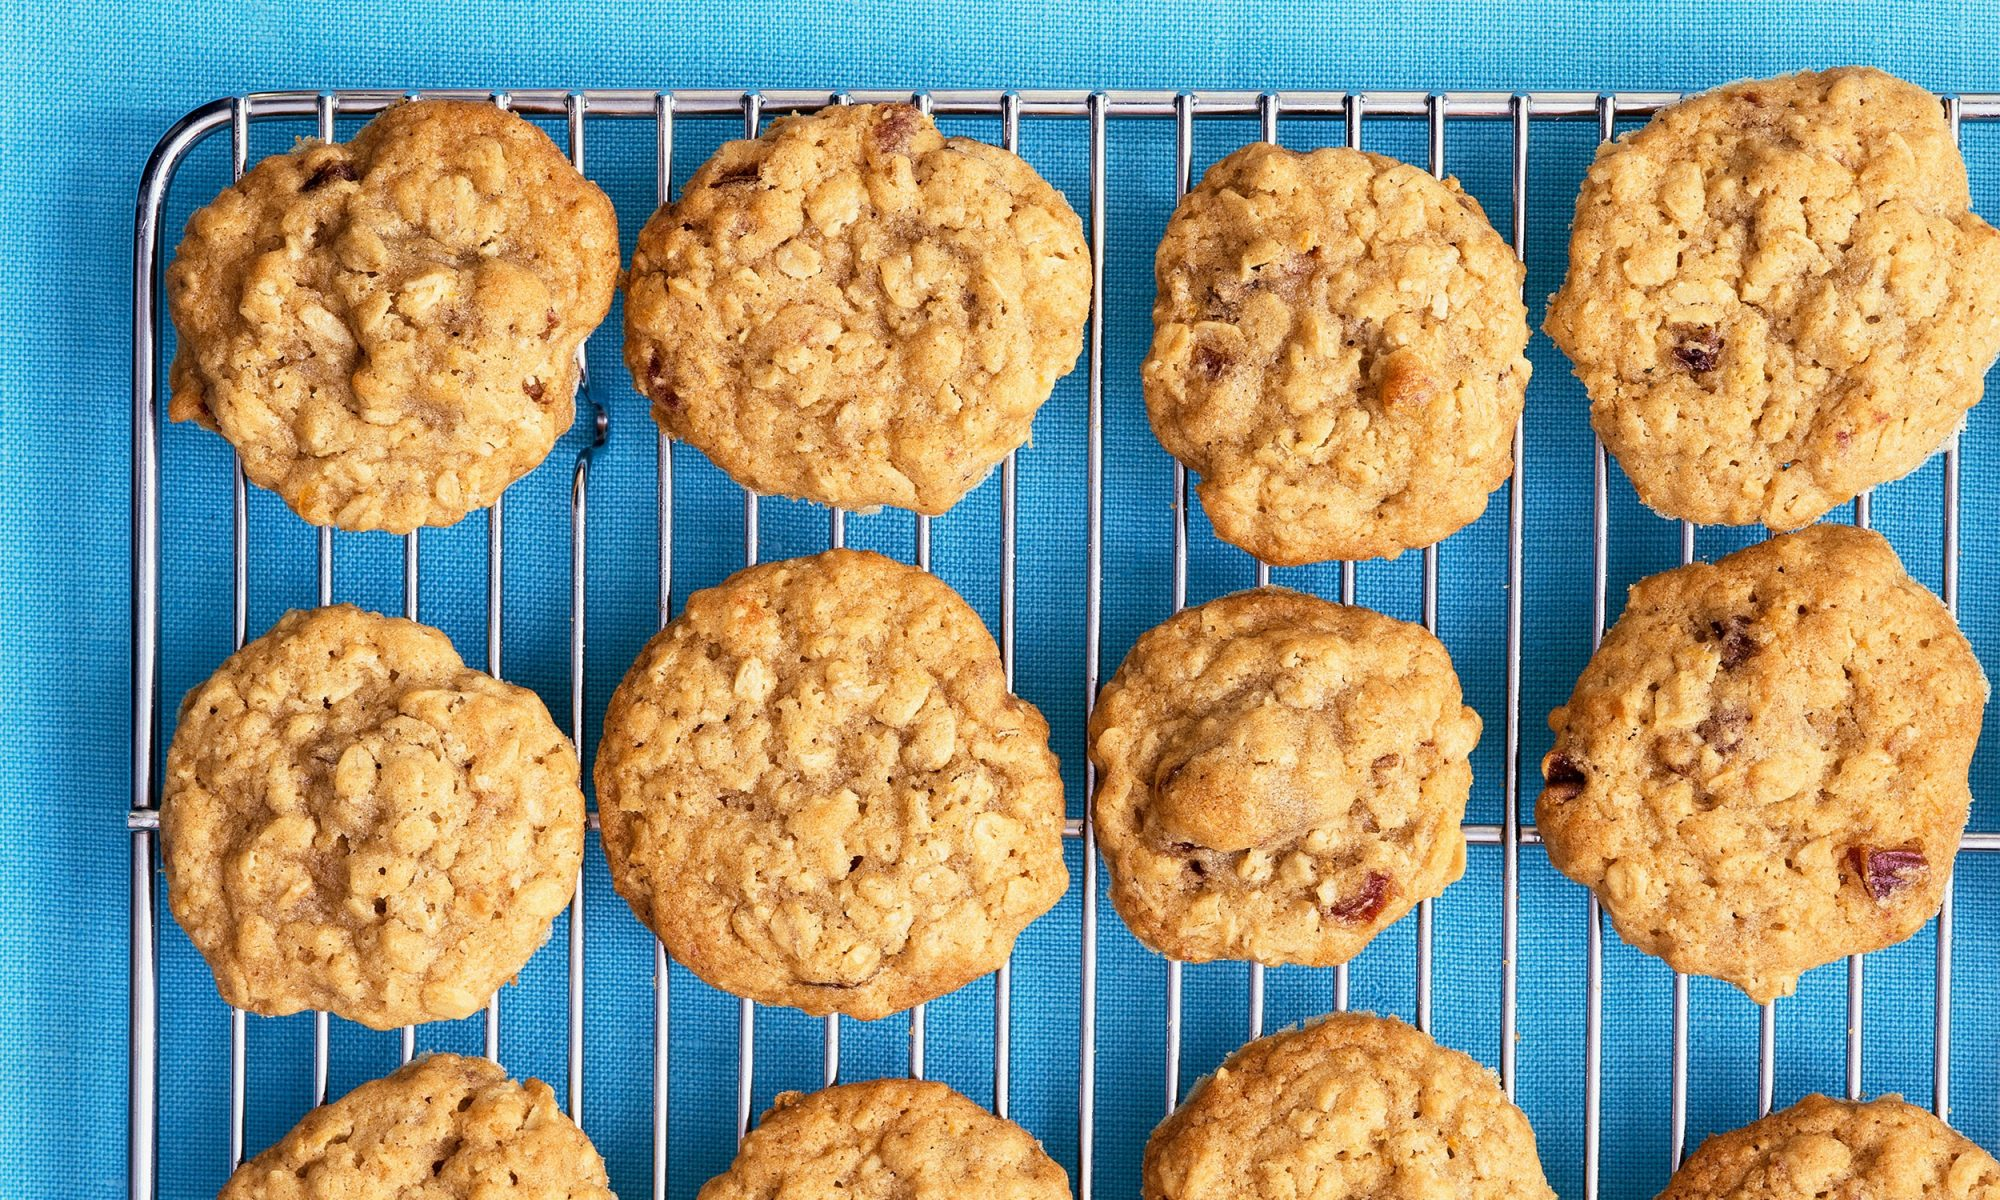 EC: How to Make Cookies from Leftover Oatmeal